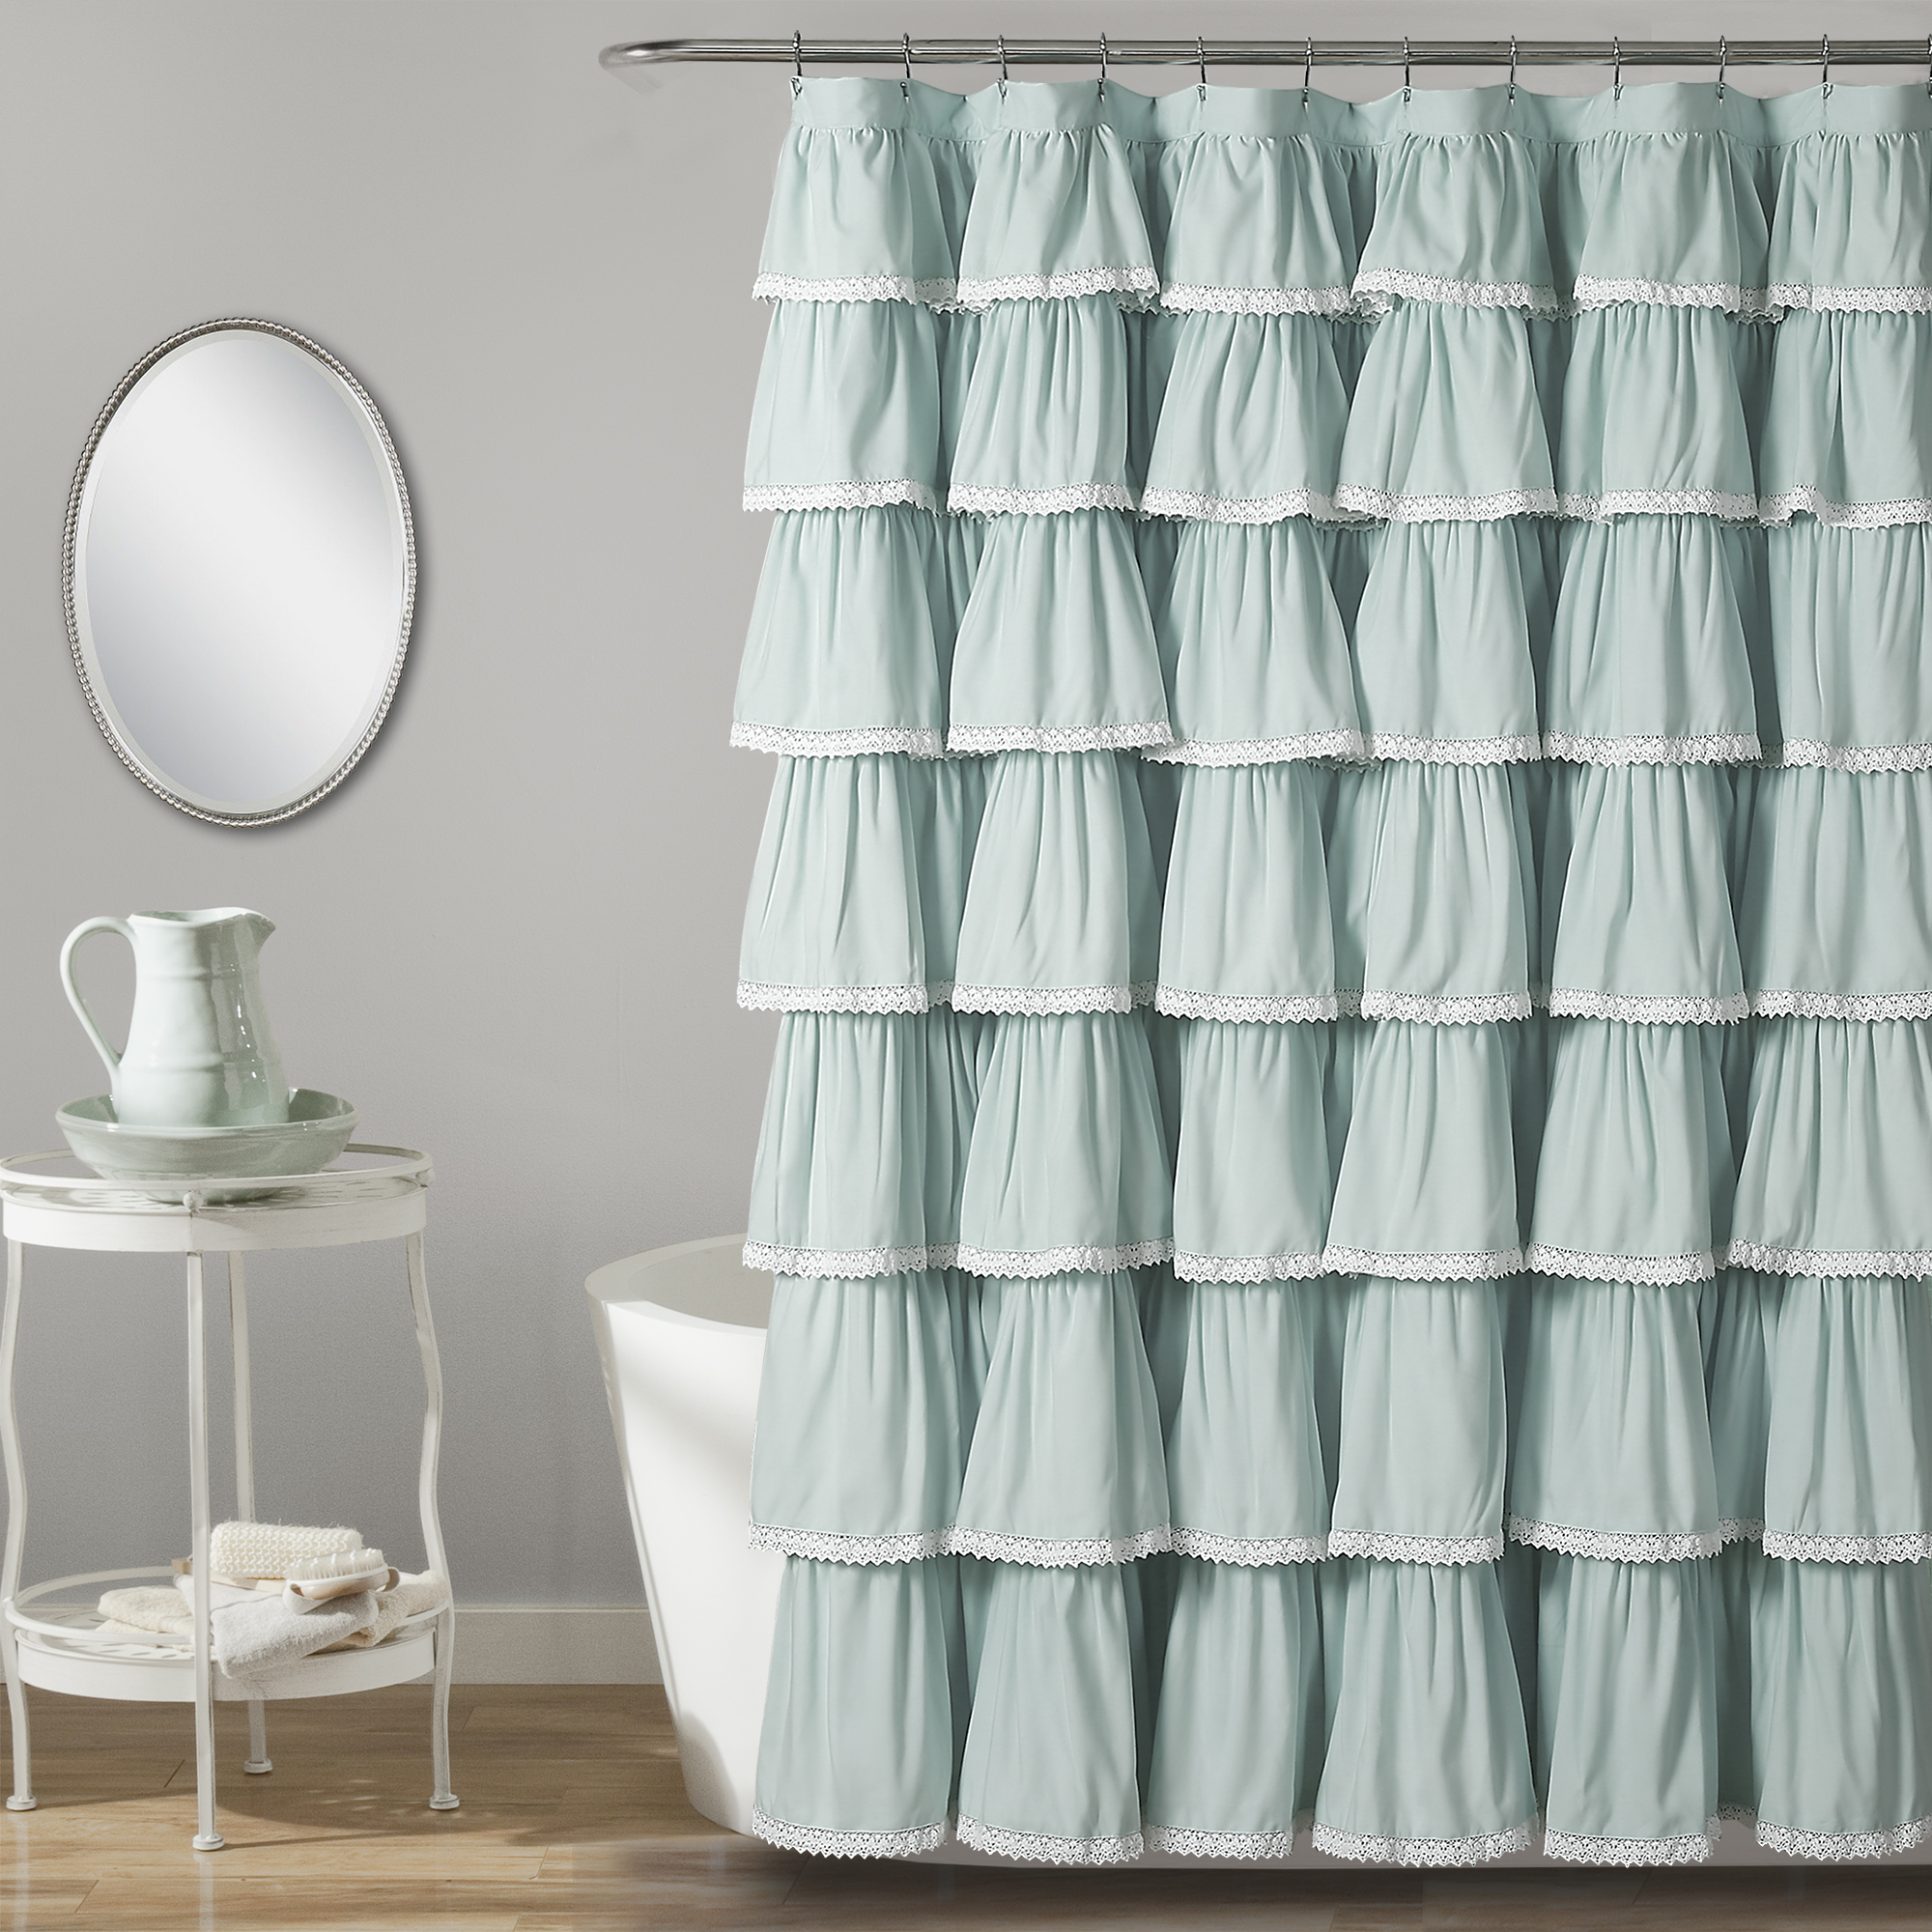 Lace Ruffle Shower Curtain 72x72